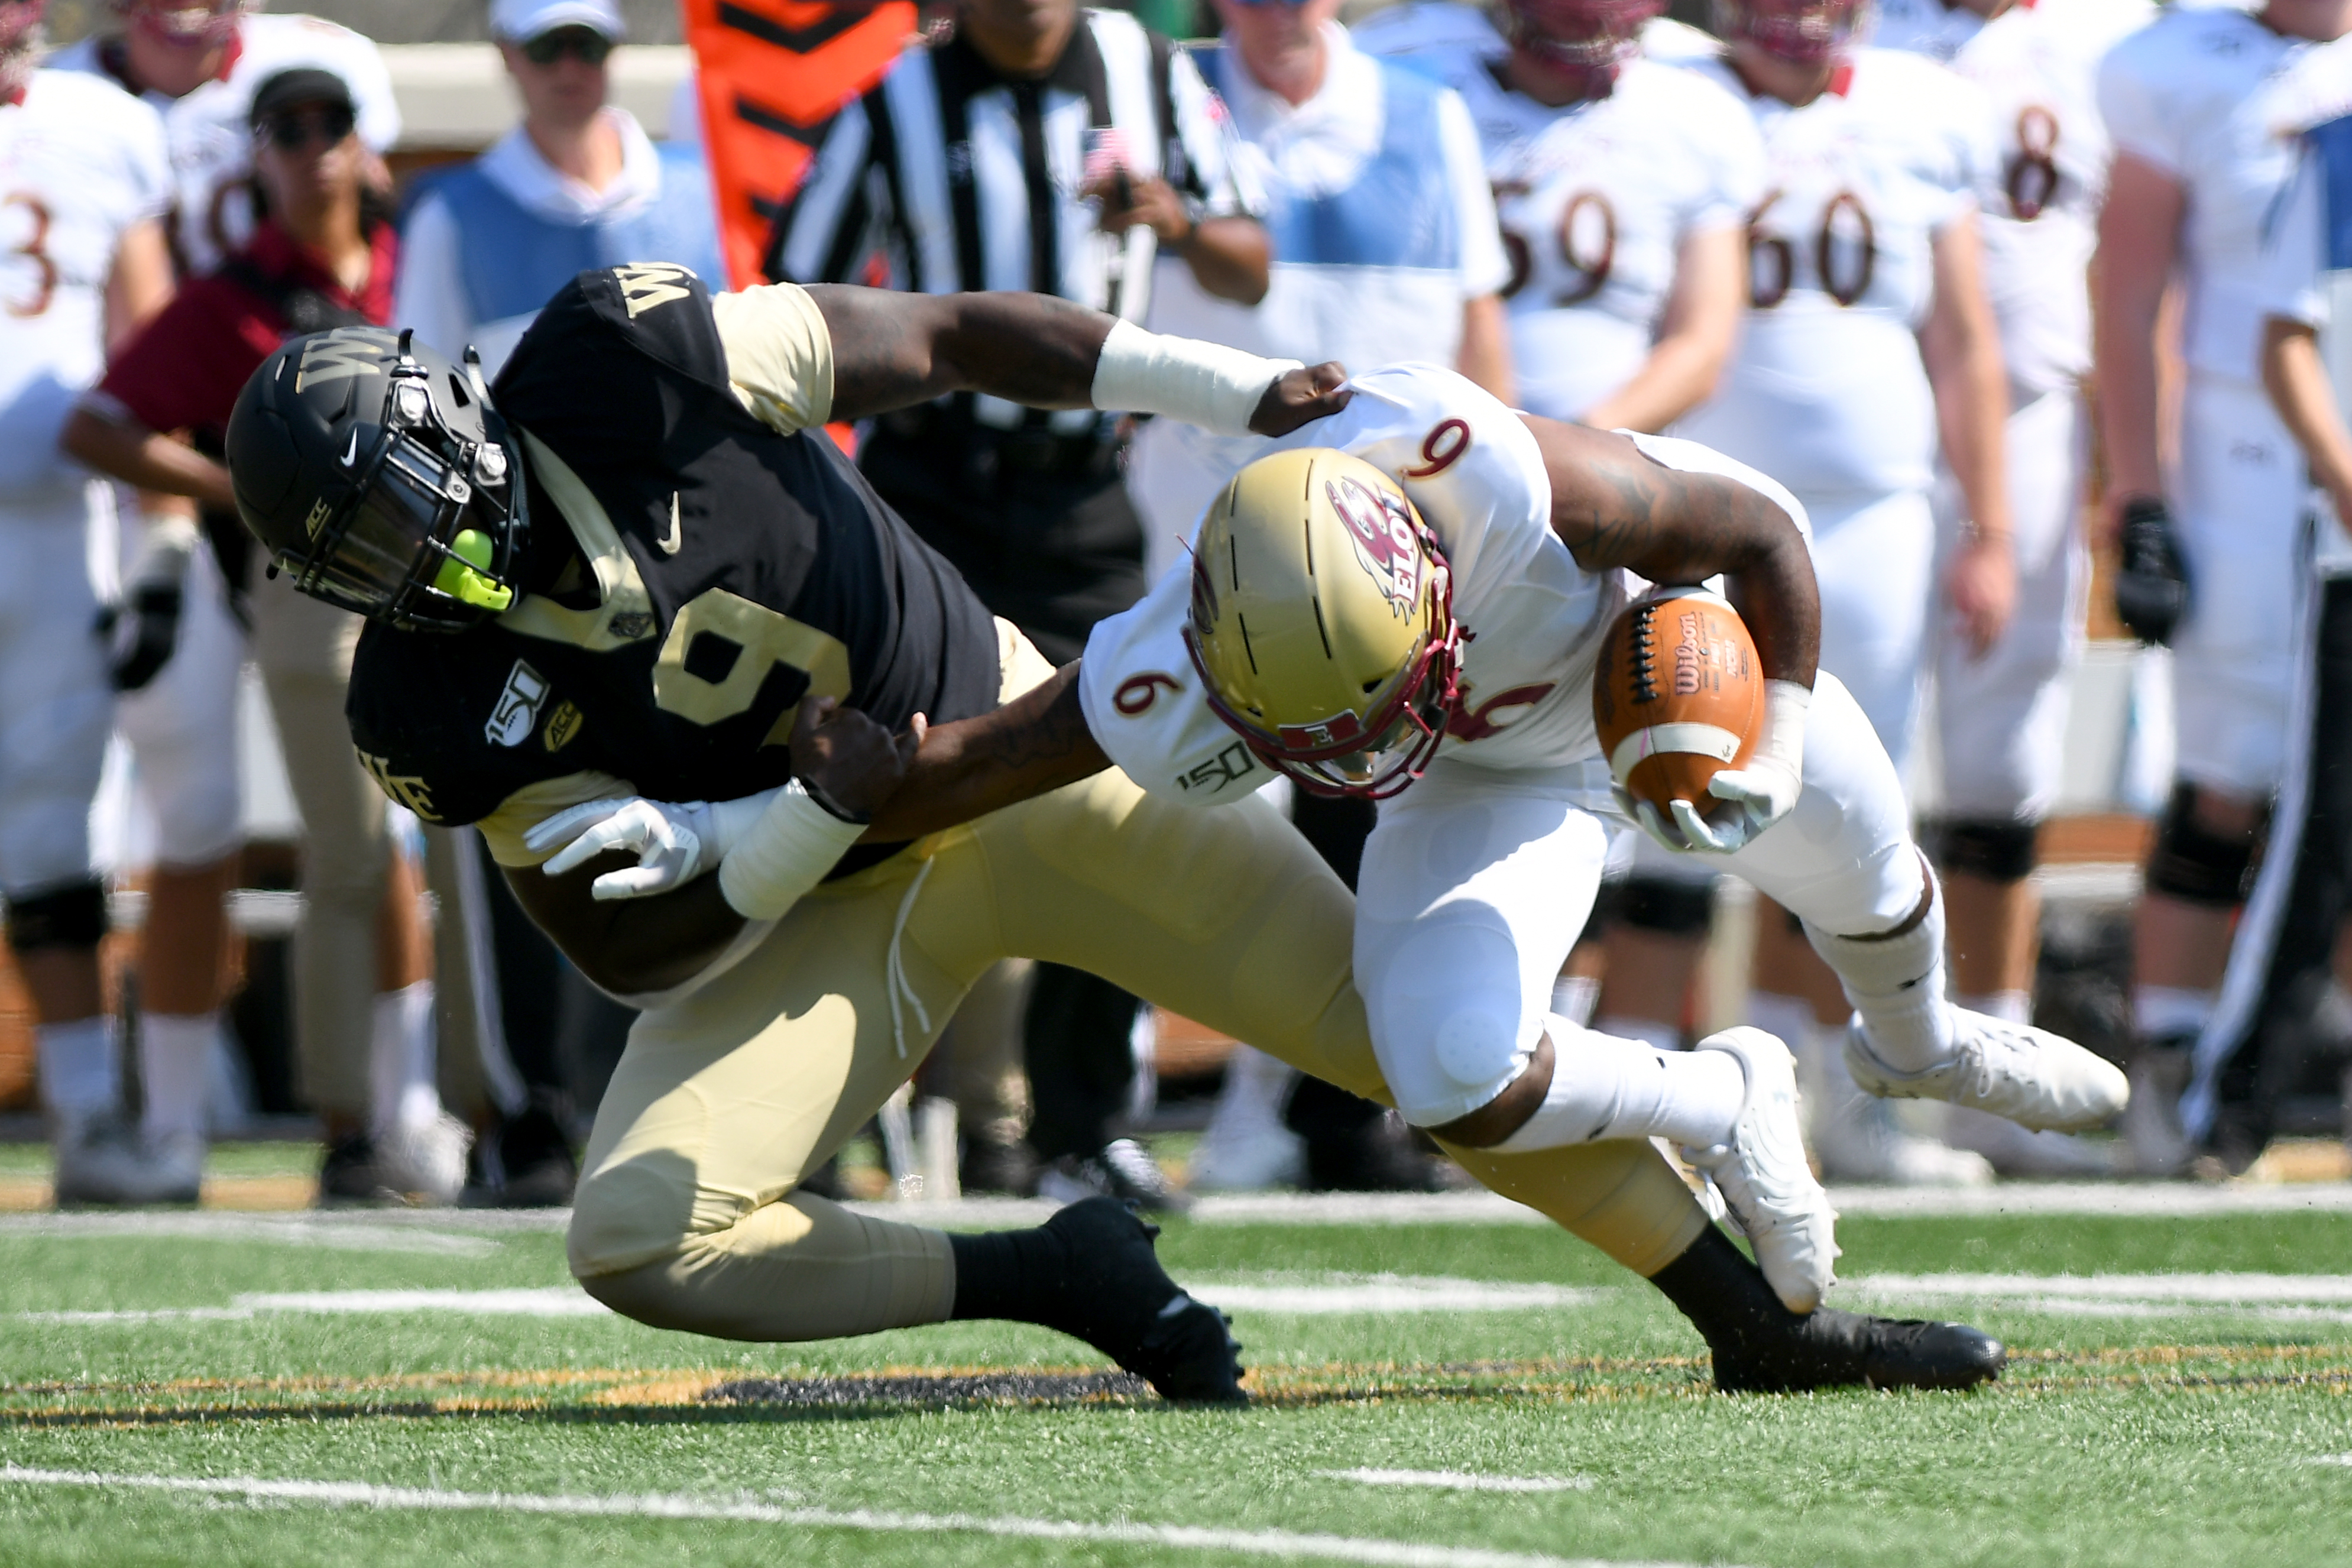 COLLEGE FOOTBALL: SEP 21 Elon at Wake Forest